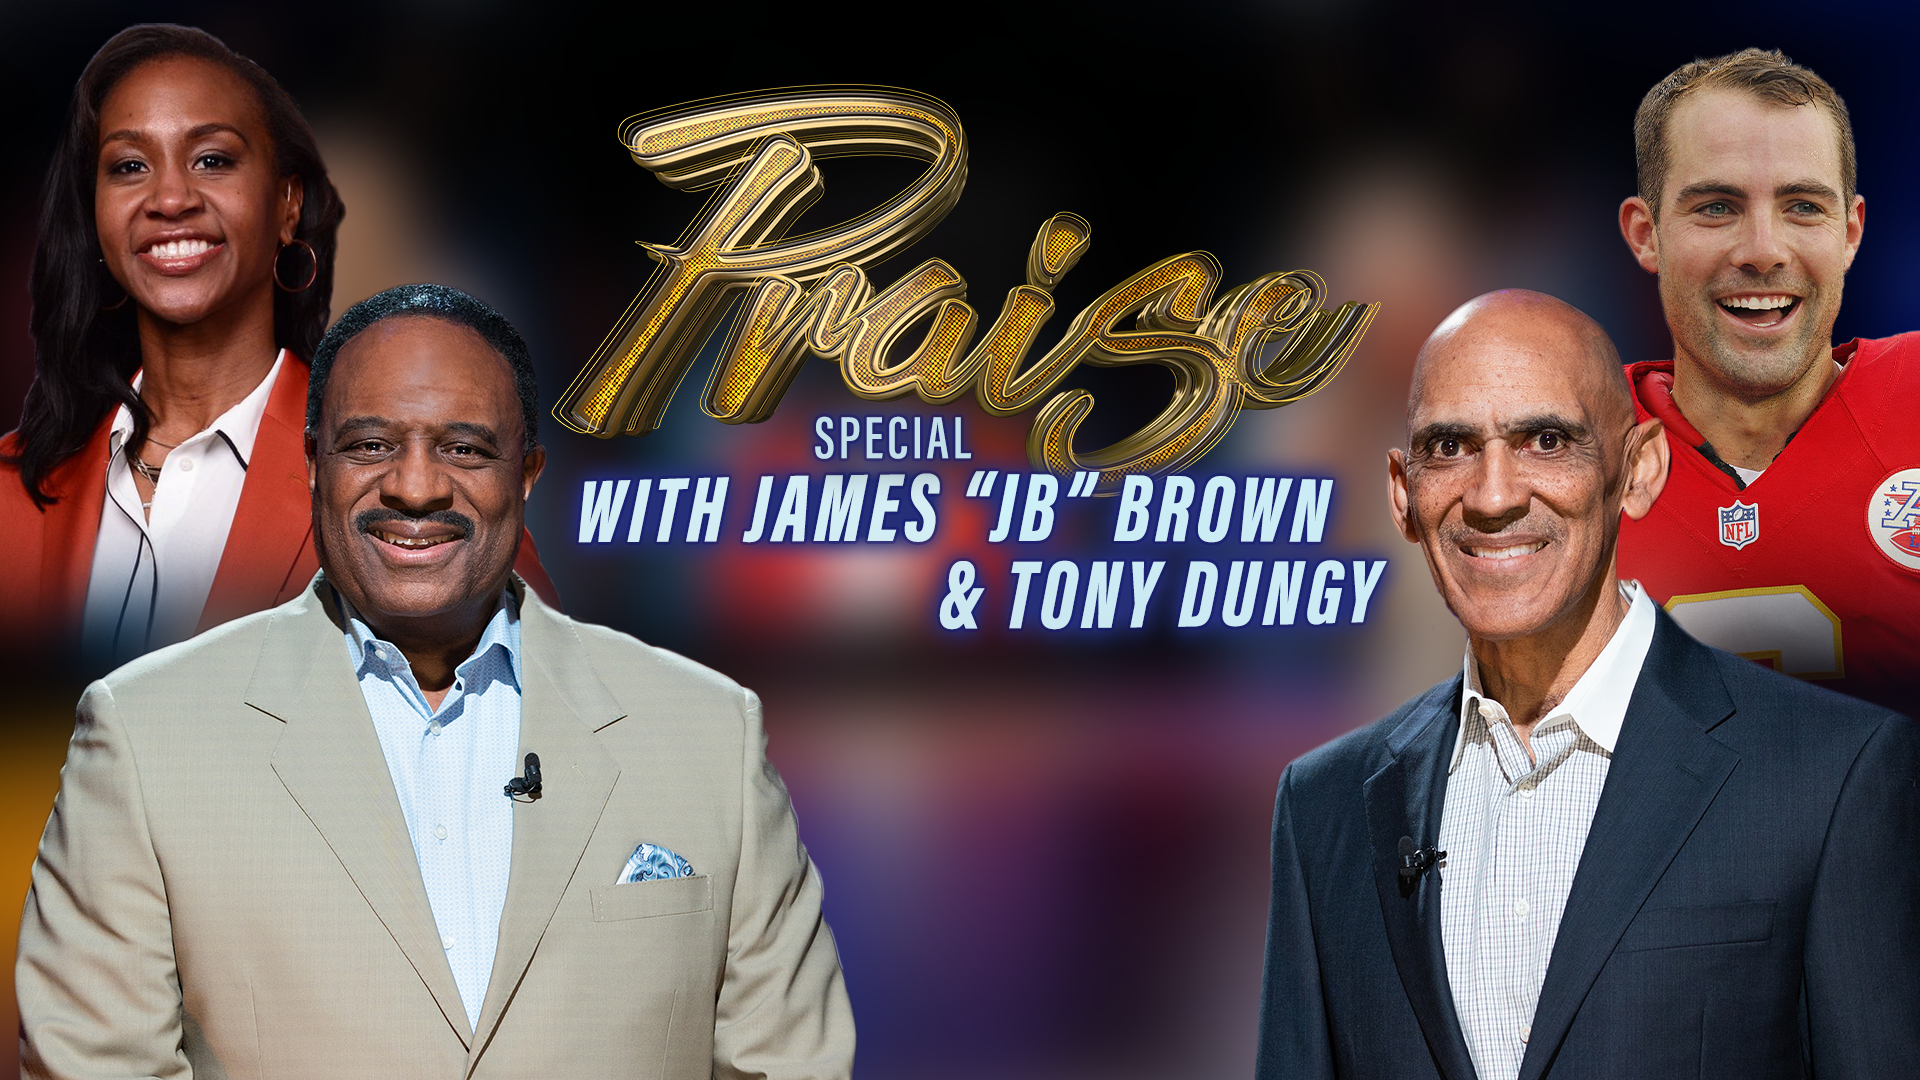 """Praise - James """"JB"""" Brown & Tony Dungy Sport Special - Part 2"""